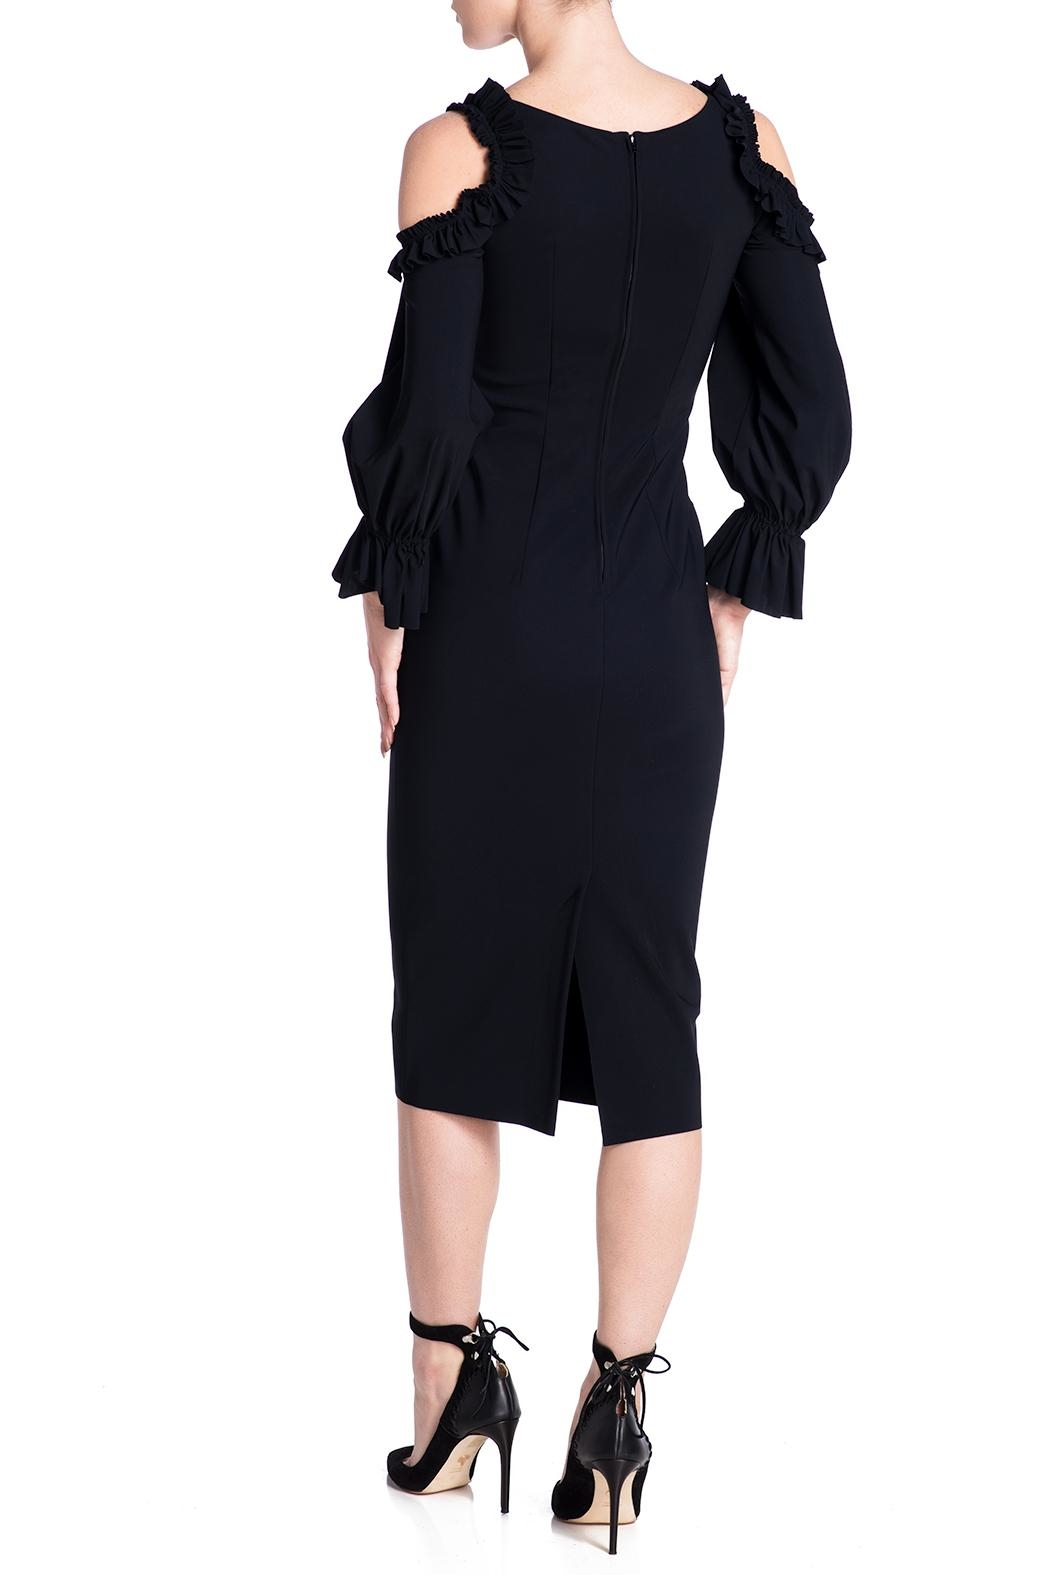 Greta Constantine Hugo Dress - Side Cropped Image